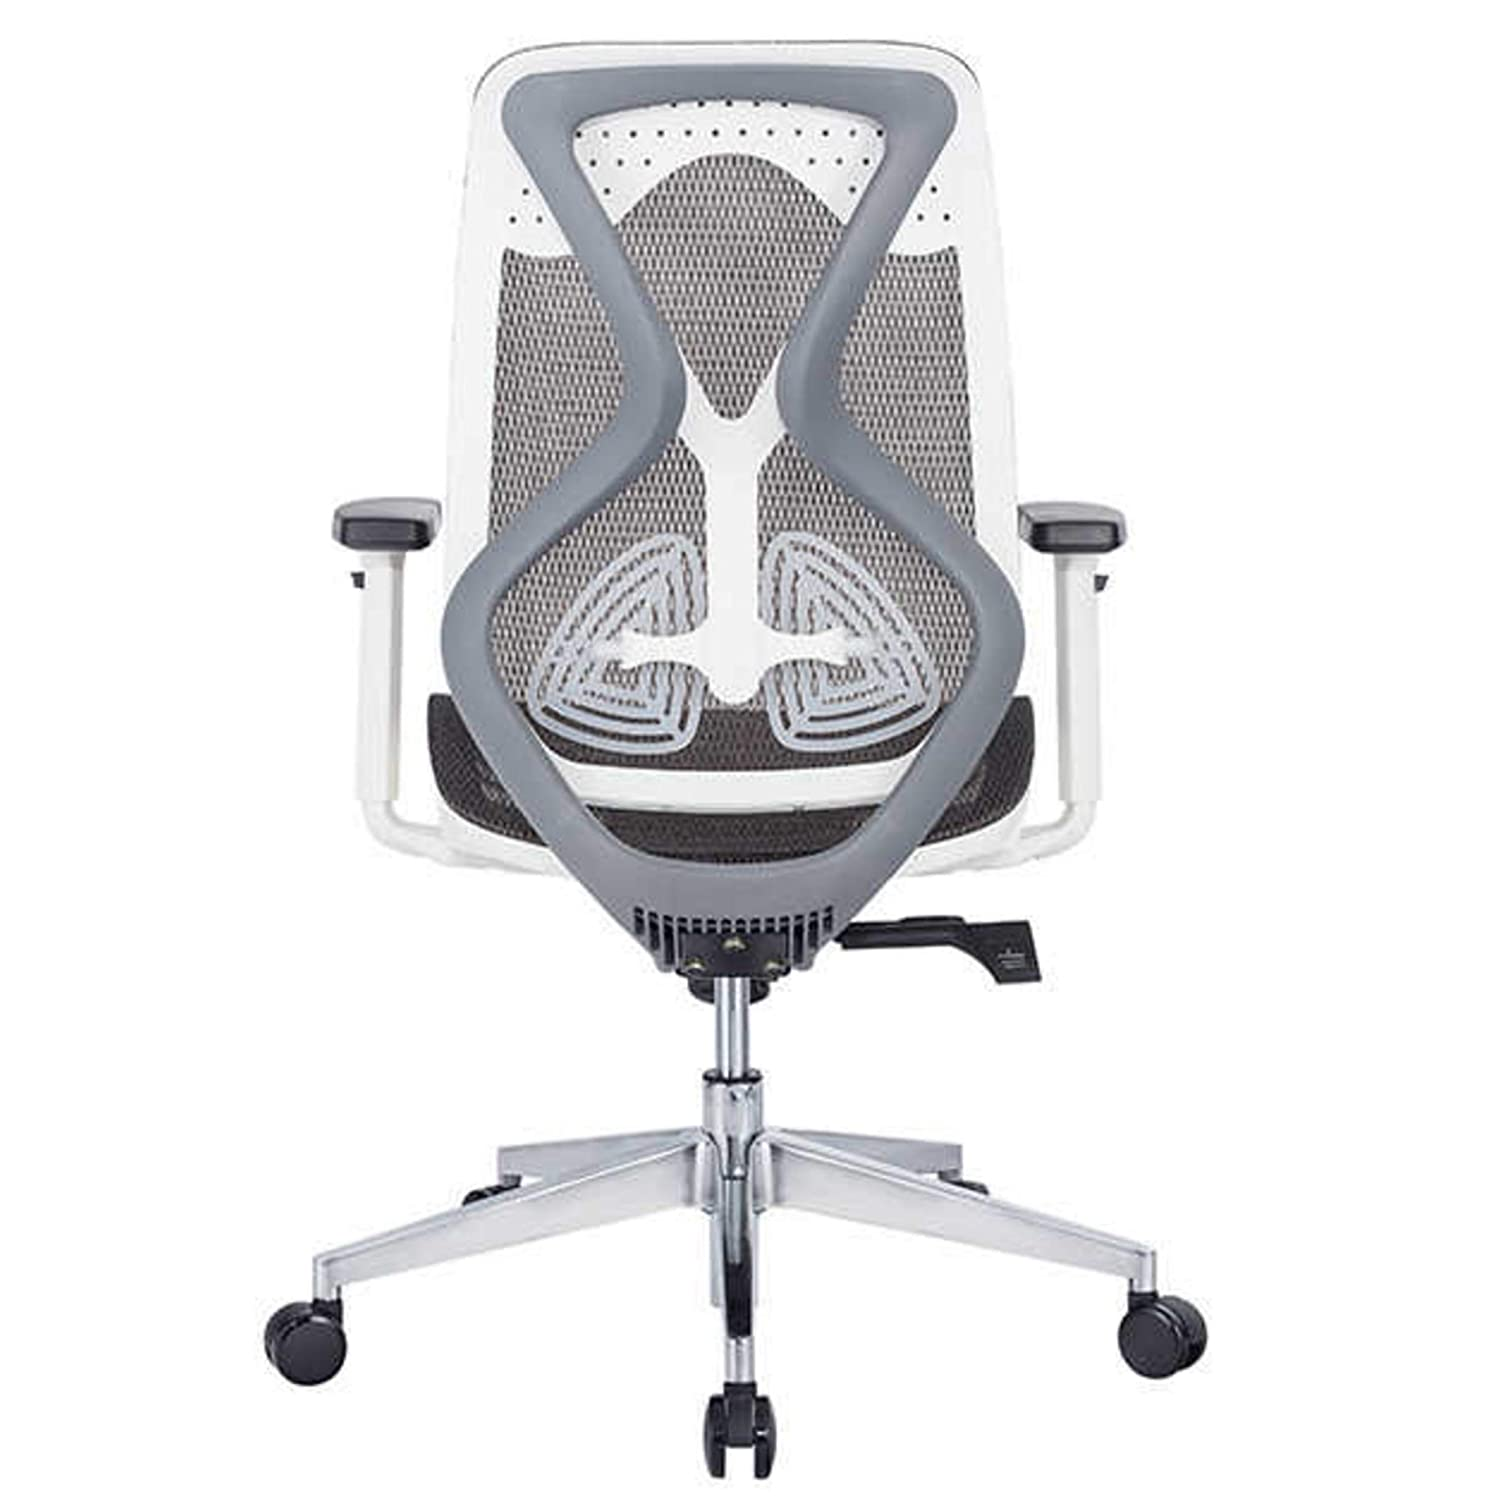 JD9 Medium Back Ergonomic Chair with Advanced Syncro Tilt Mechanism with Multi Position Lock for Office & Home